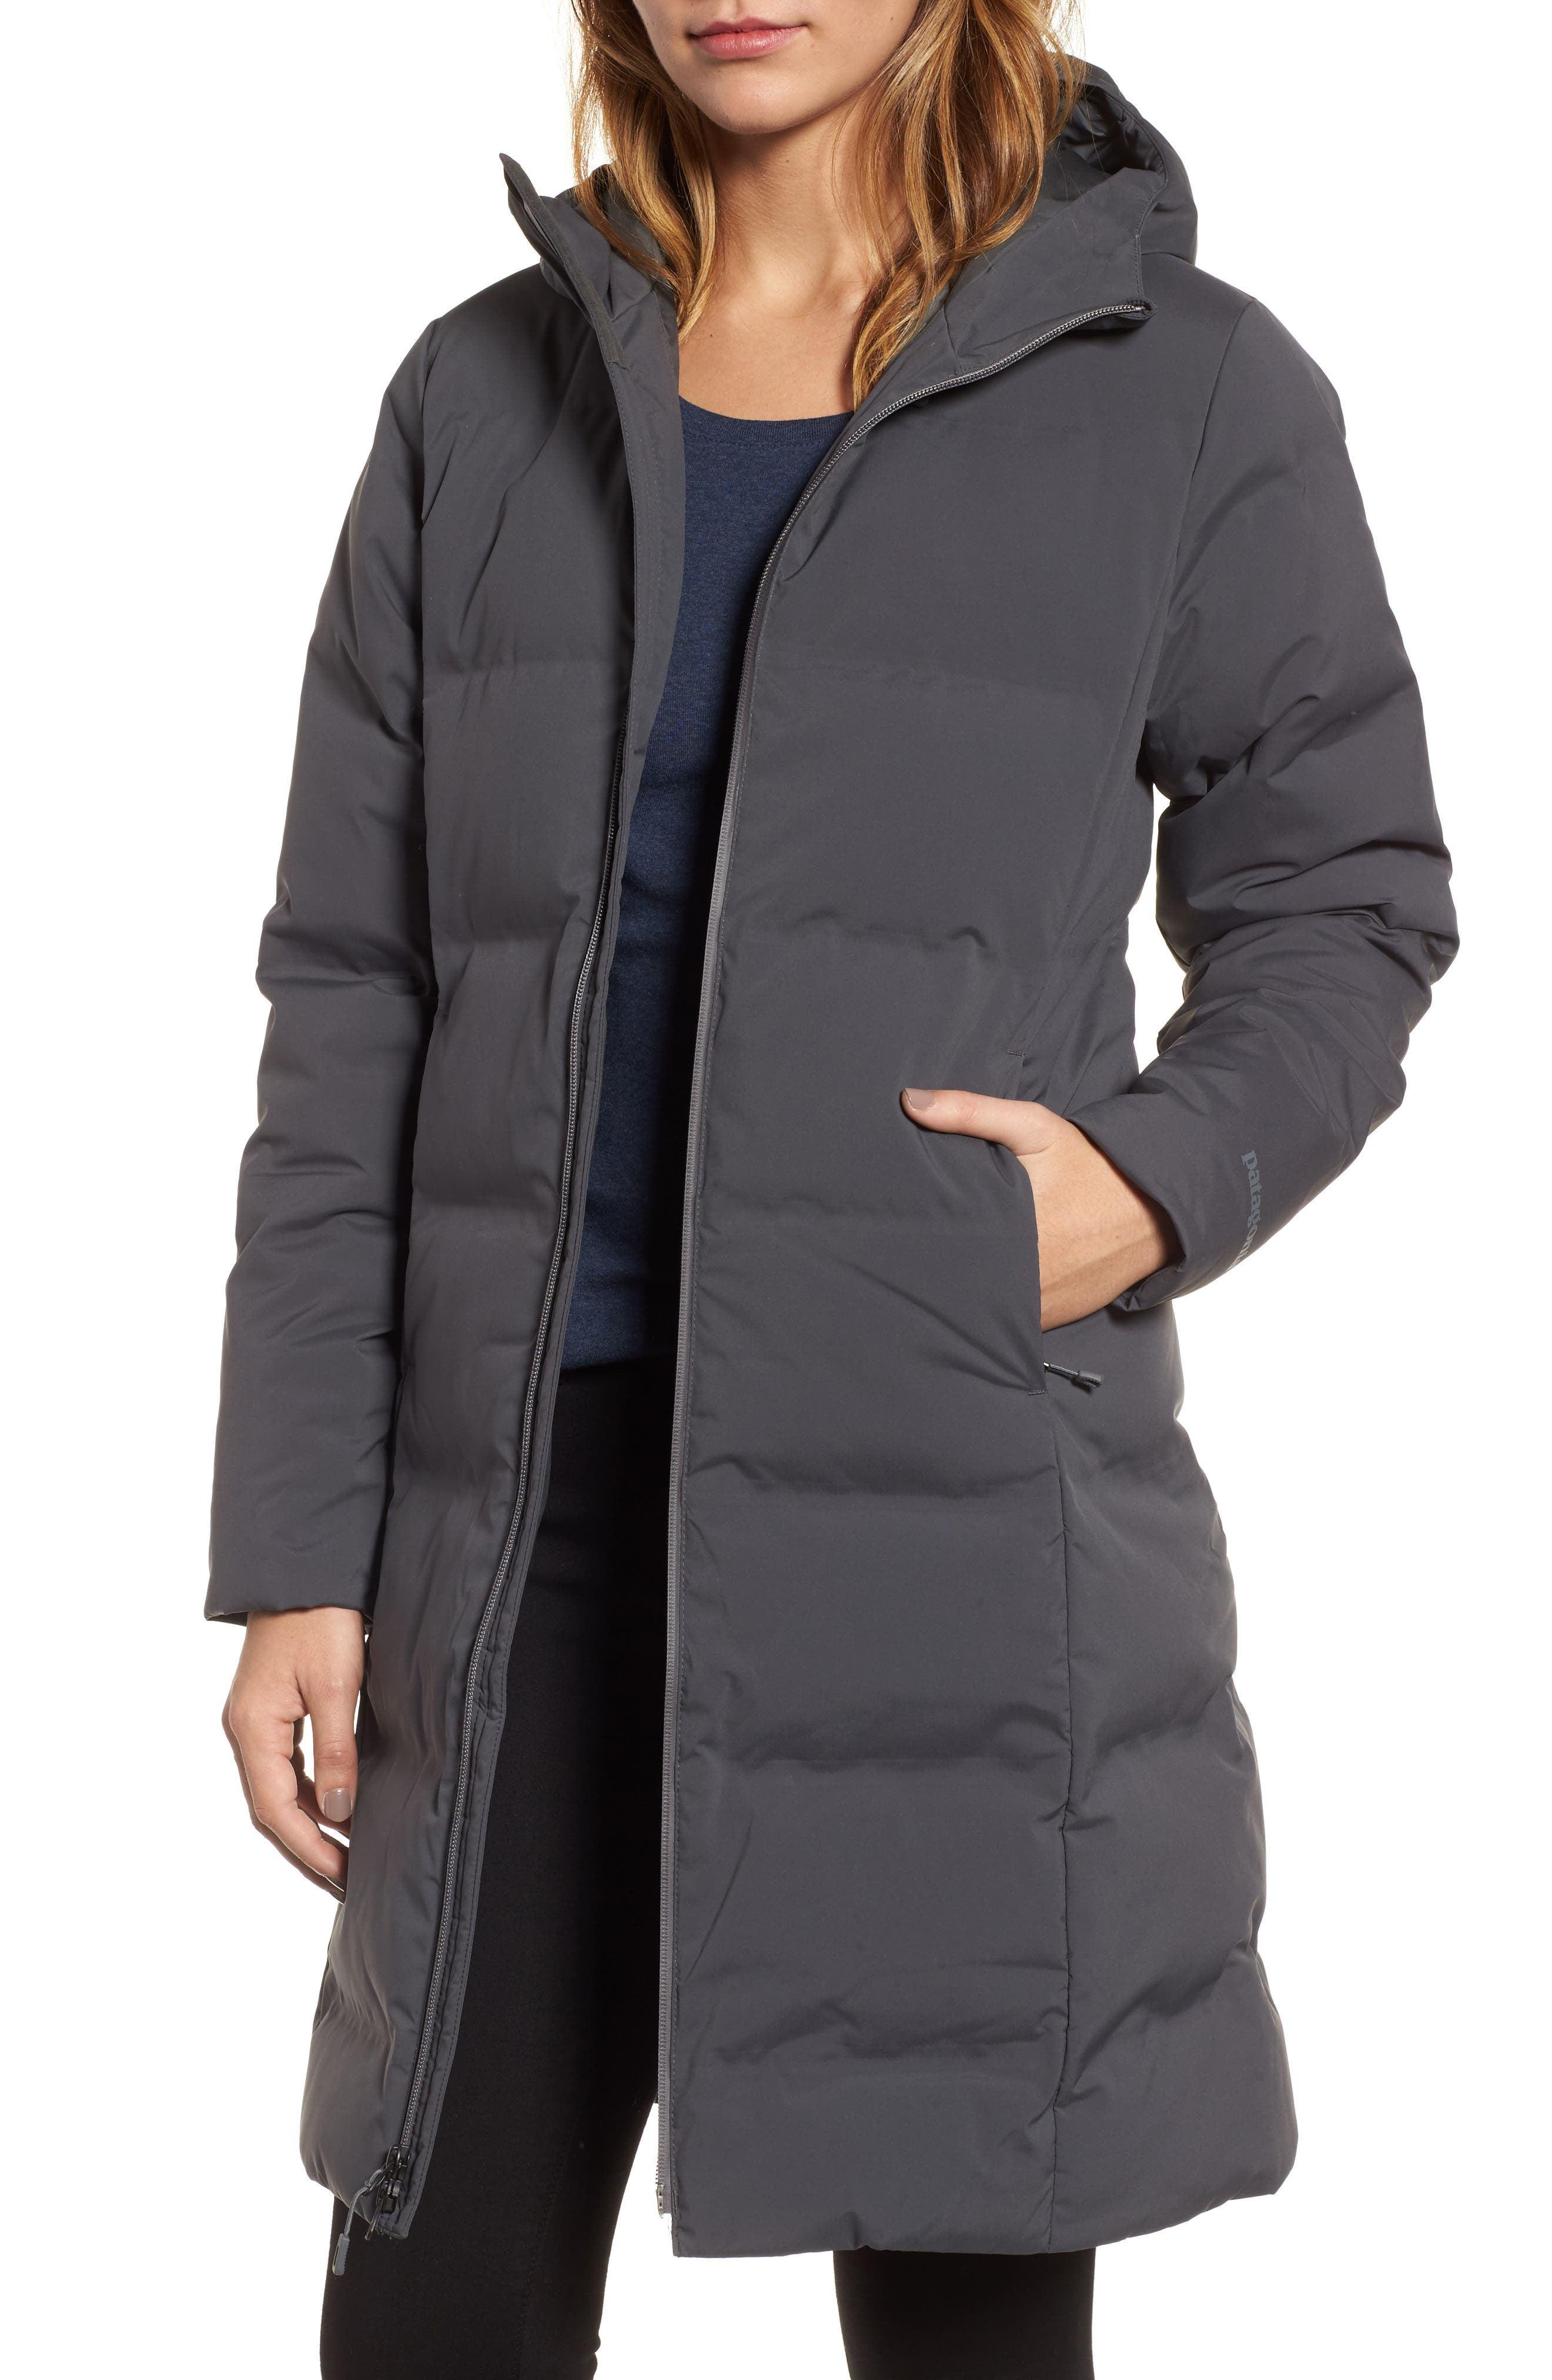 Patagonia parka with fur hood